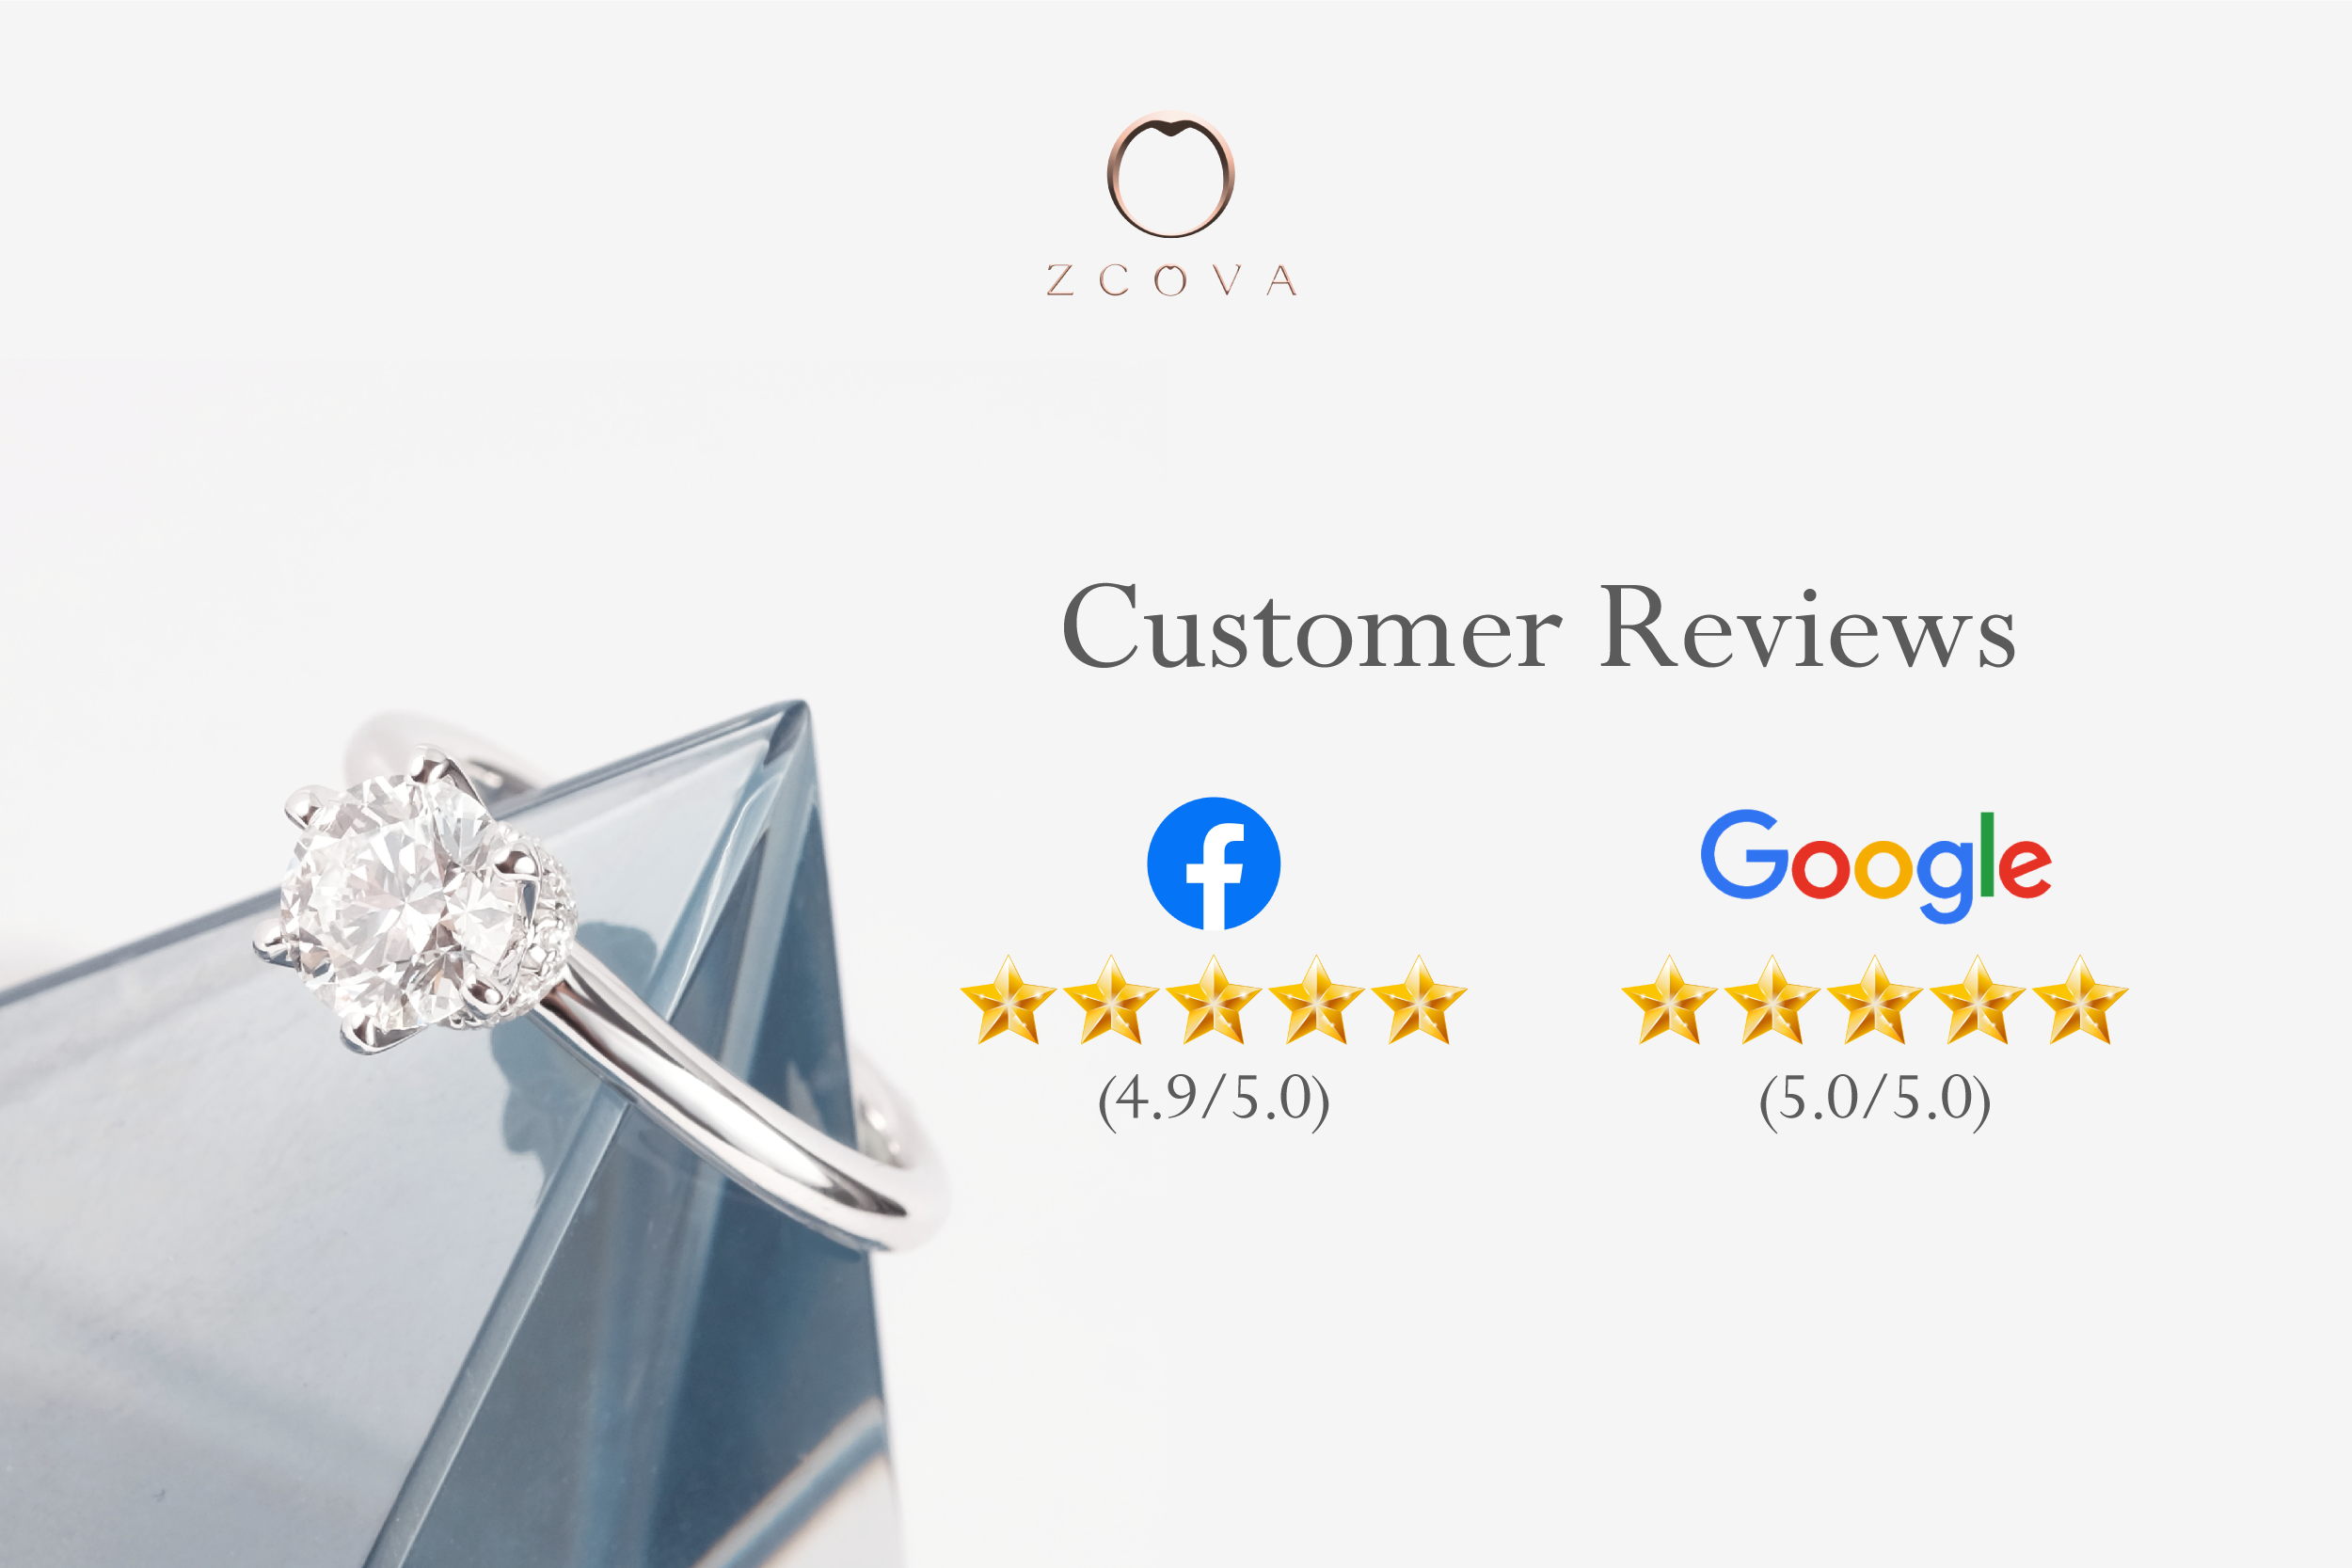 zcova reviews from customers cover